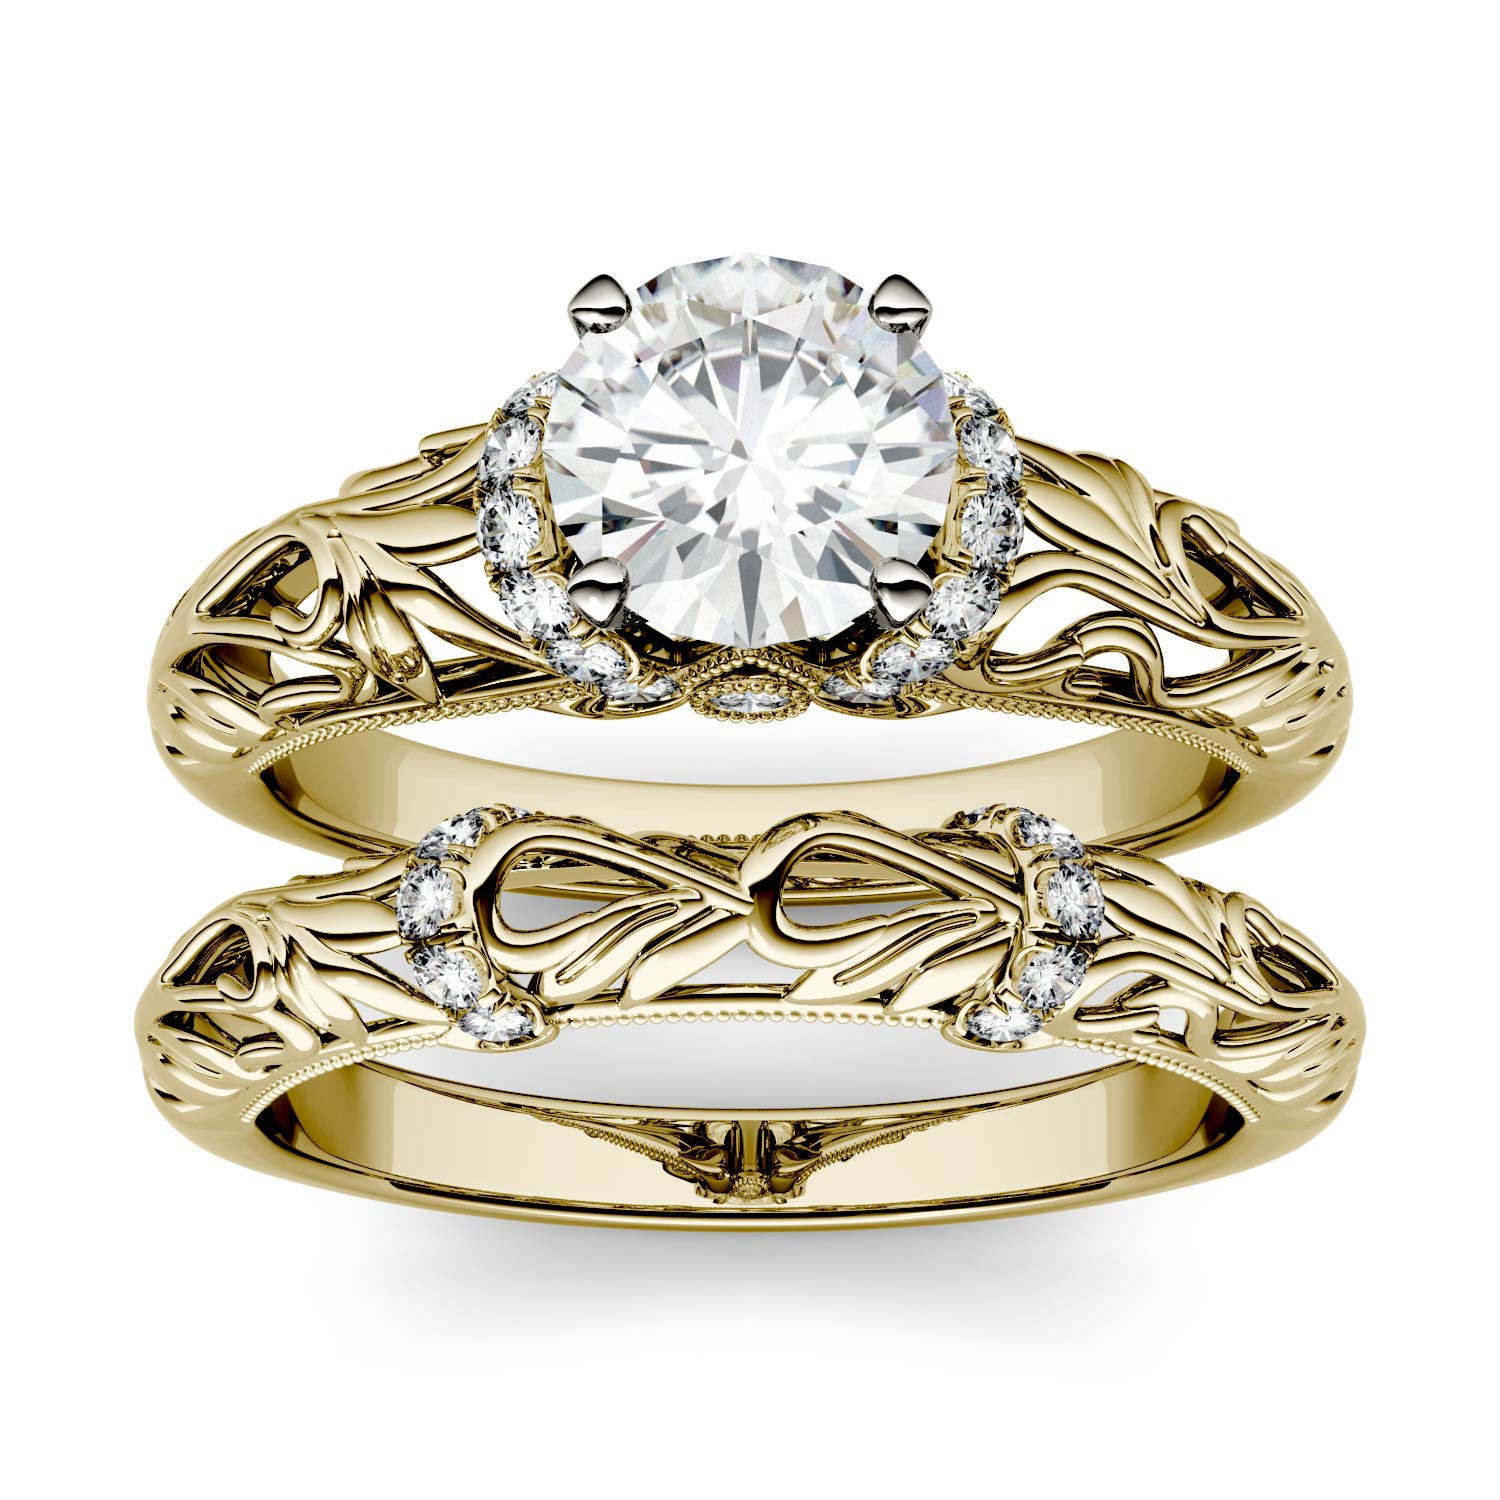 Round 1.06cttw DEW Moissanite Floral Band Solitaire with Side Accents Bridal Ring in 14K Yellow Gold 505098